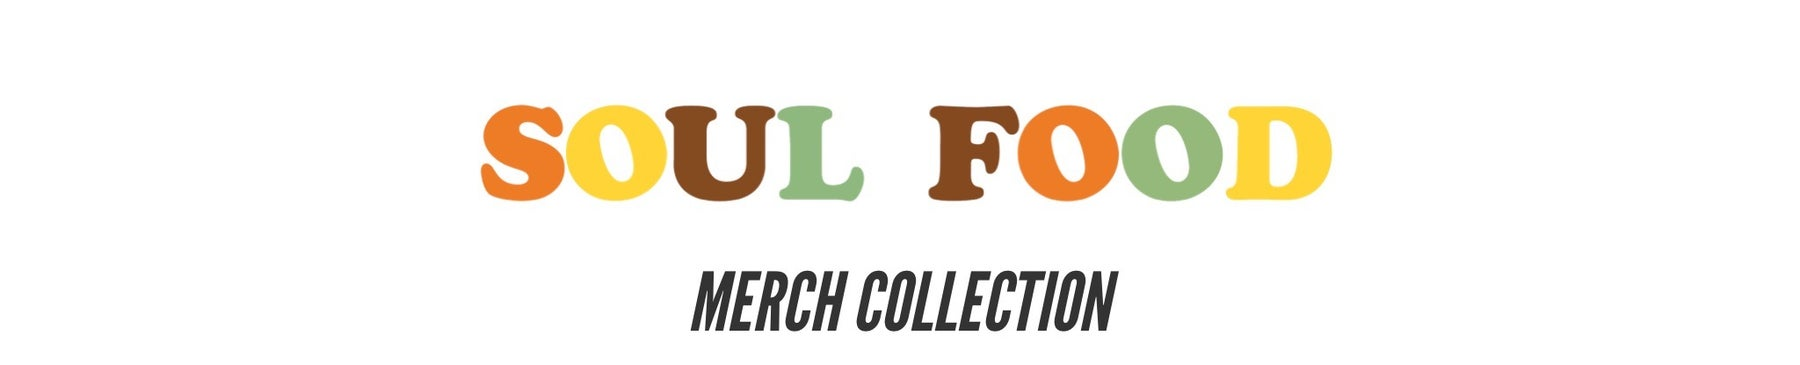 Soul Food Merch Collection